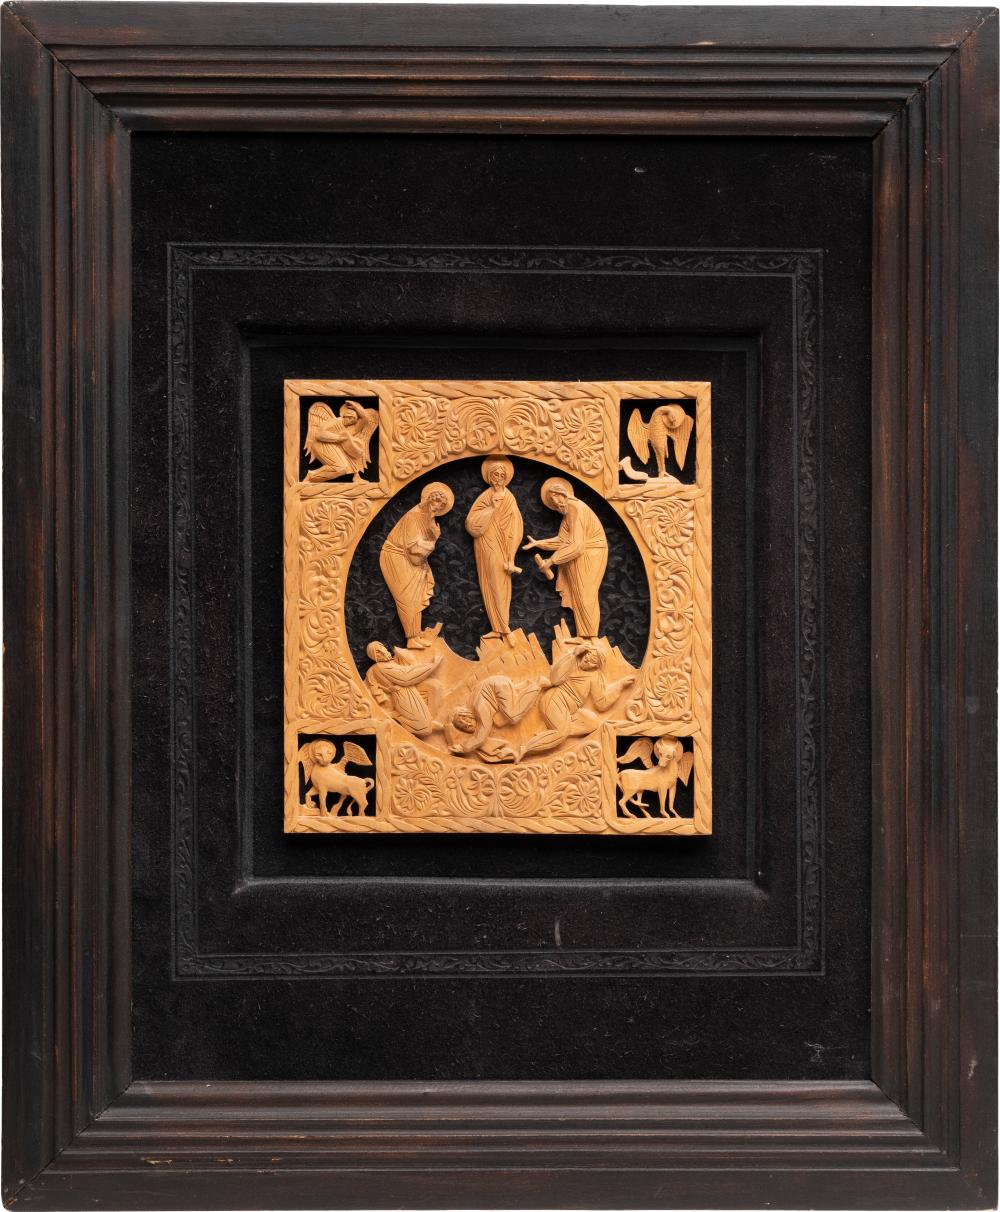 A WOOD CARVING SHOWING THE TRANSFIGURATION OF CHRIST